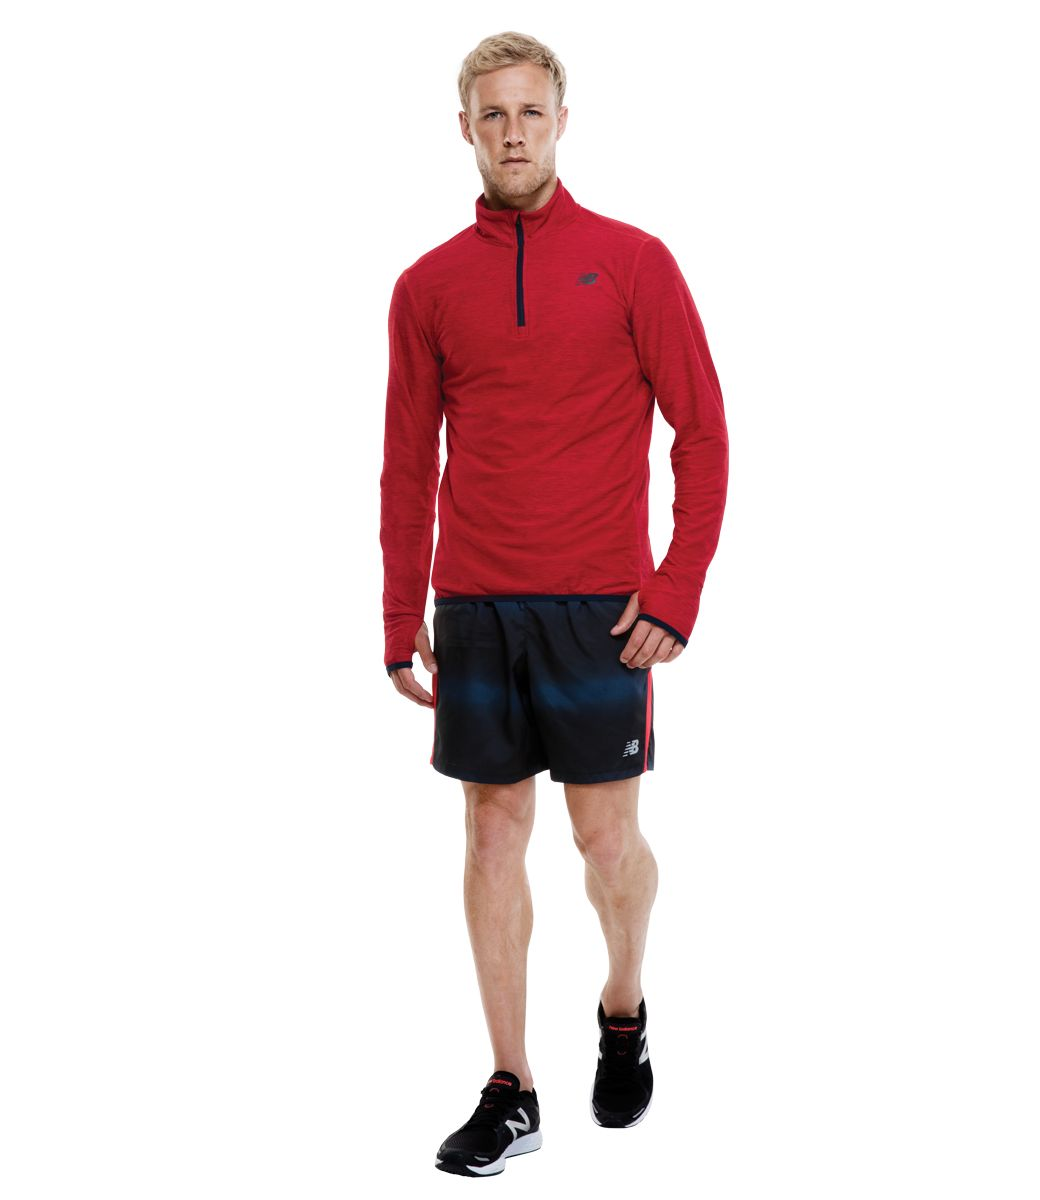 New Balance Men's Key Look 3 Q416,